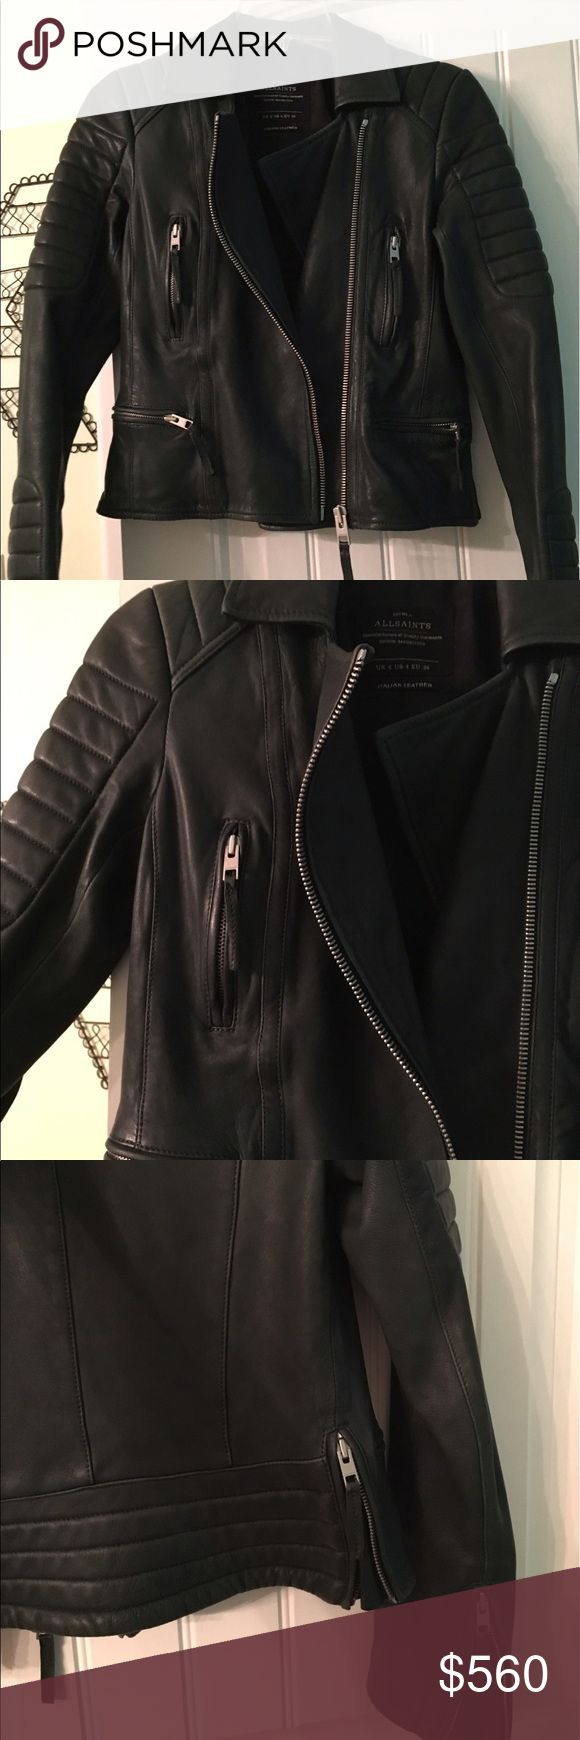 All Saints Forest Green Leather Jacket Worn only a few